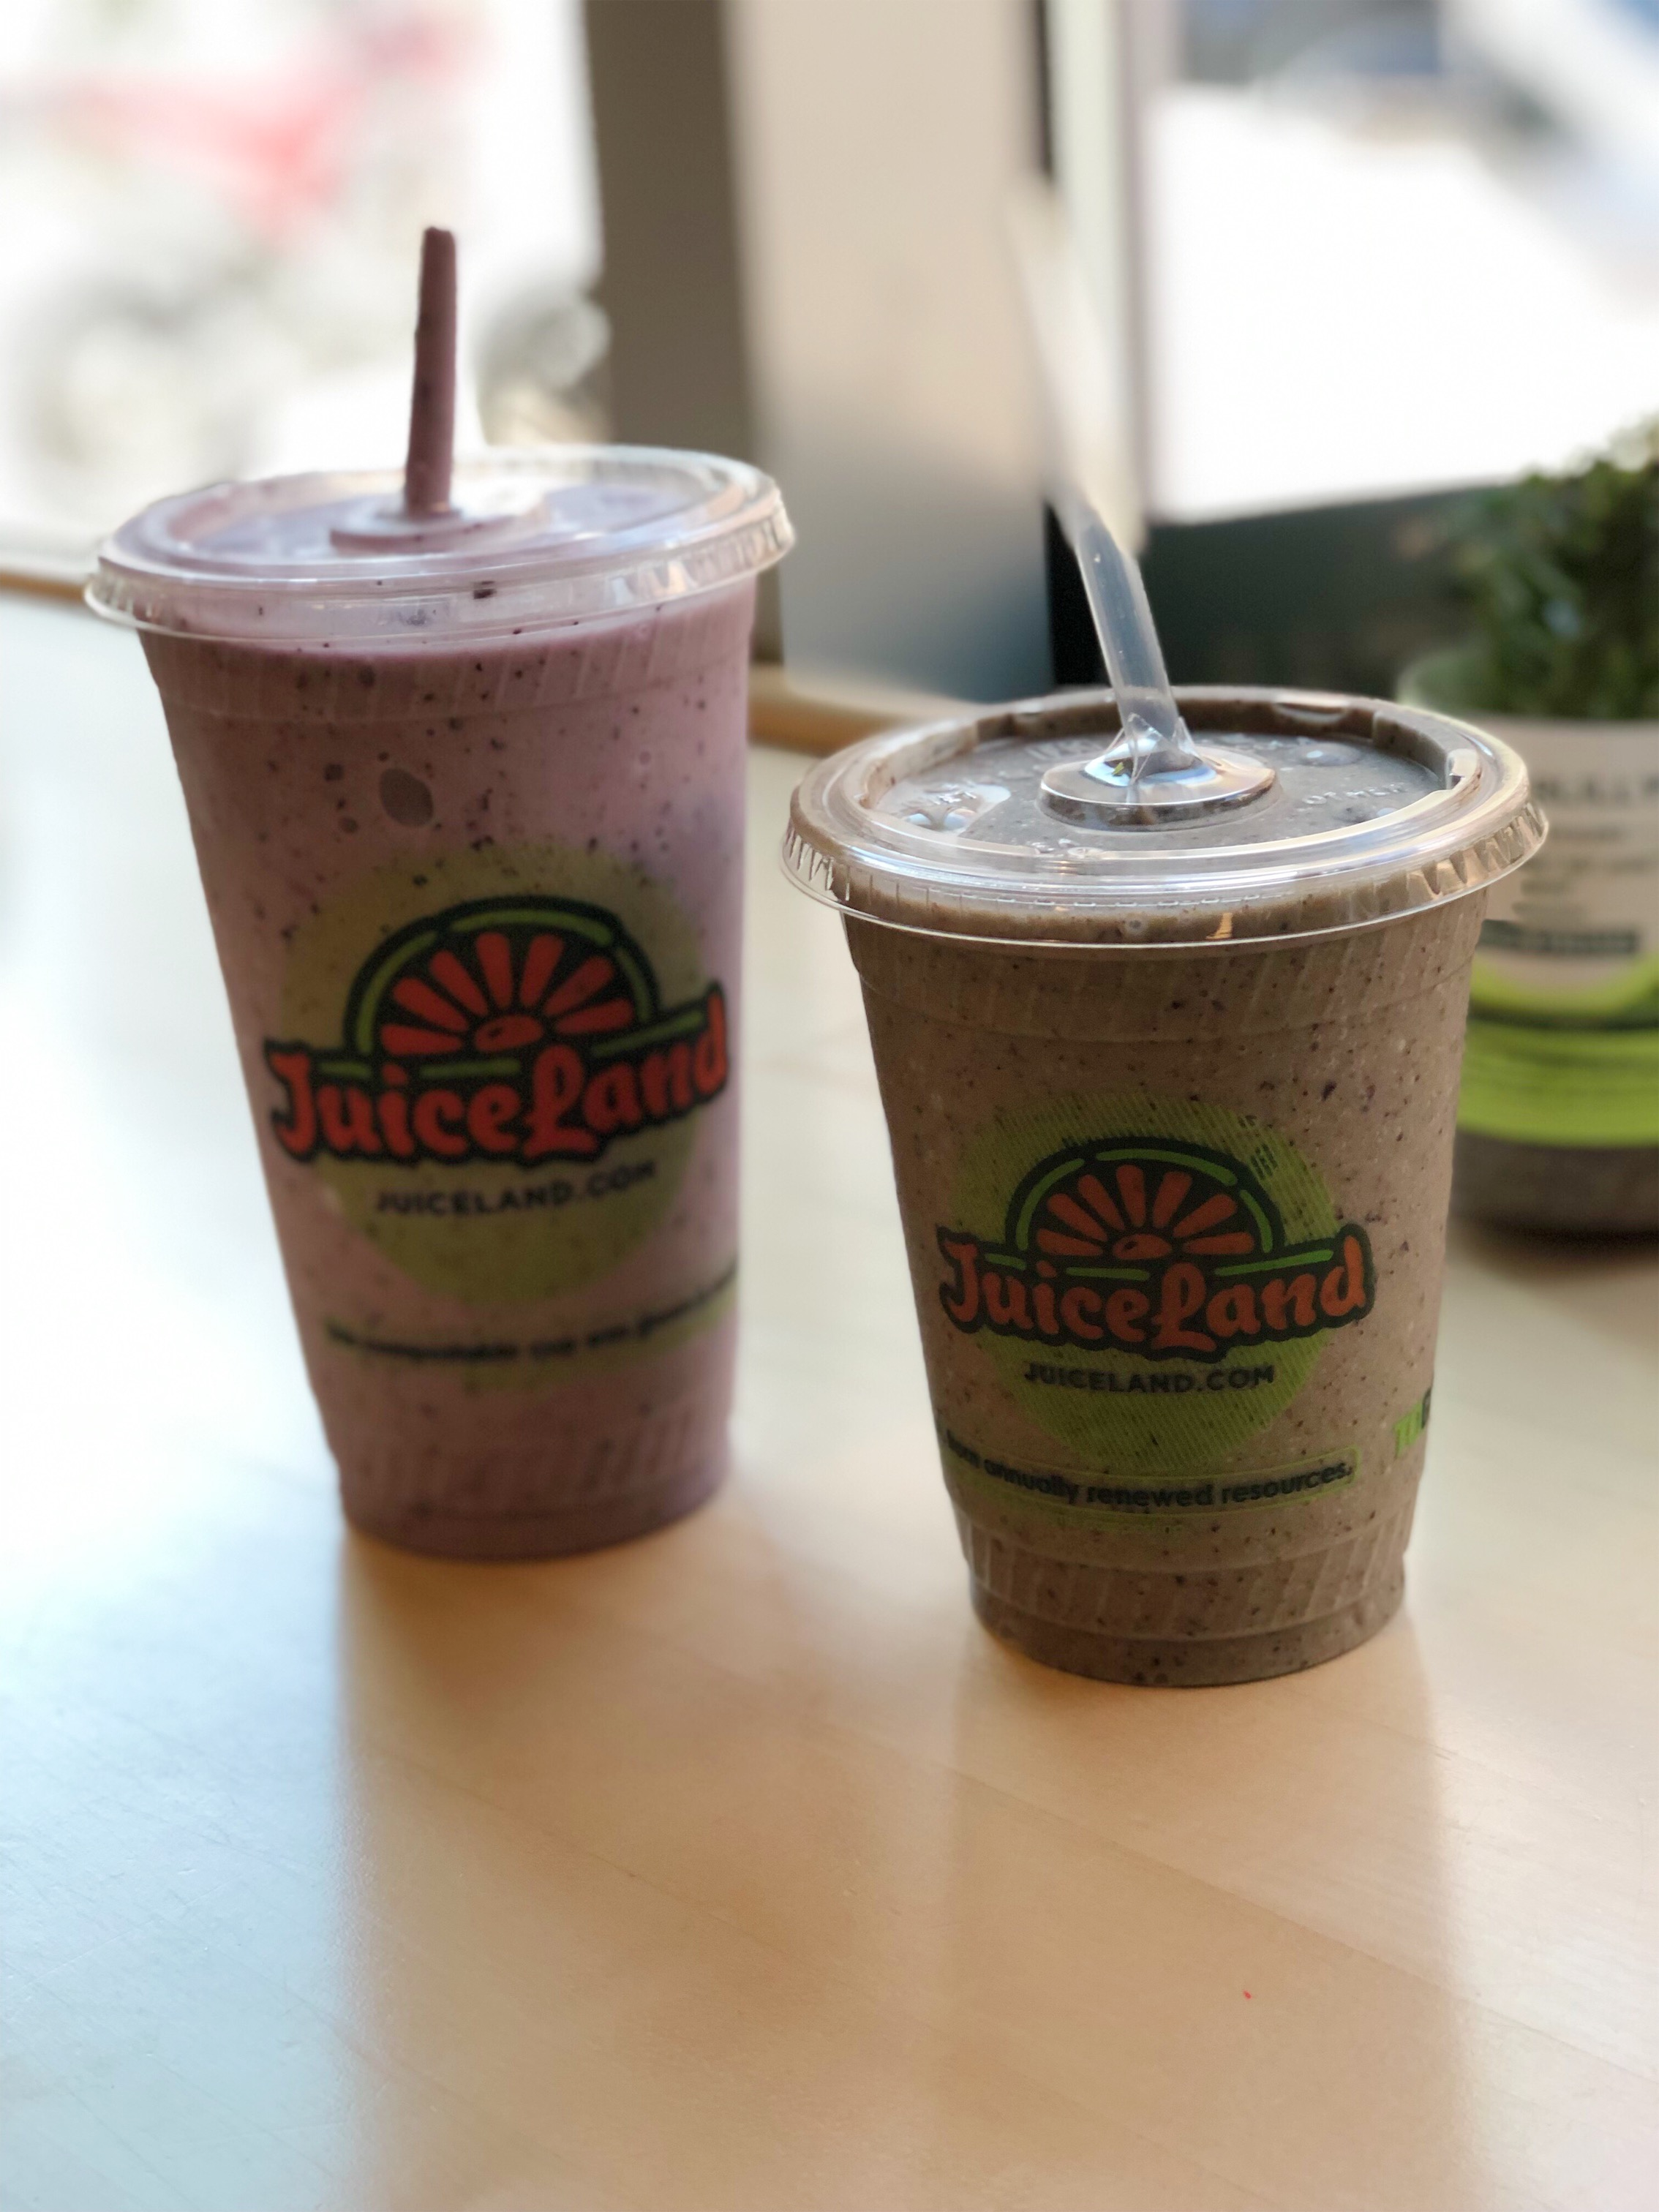 Wundershowzen smoothie at JuiceLand